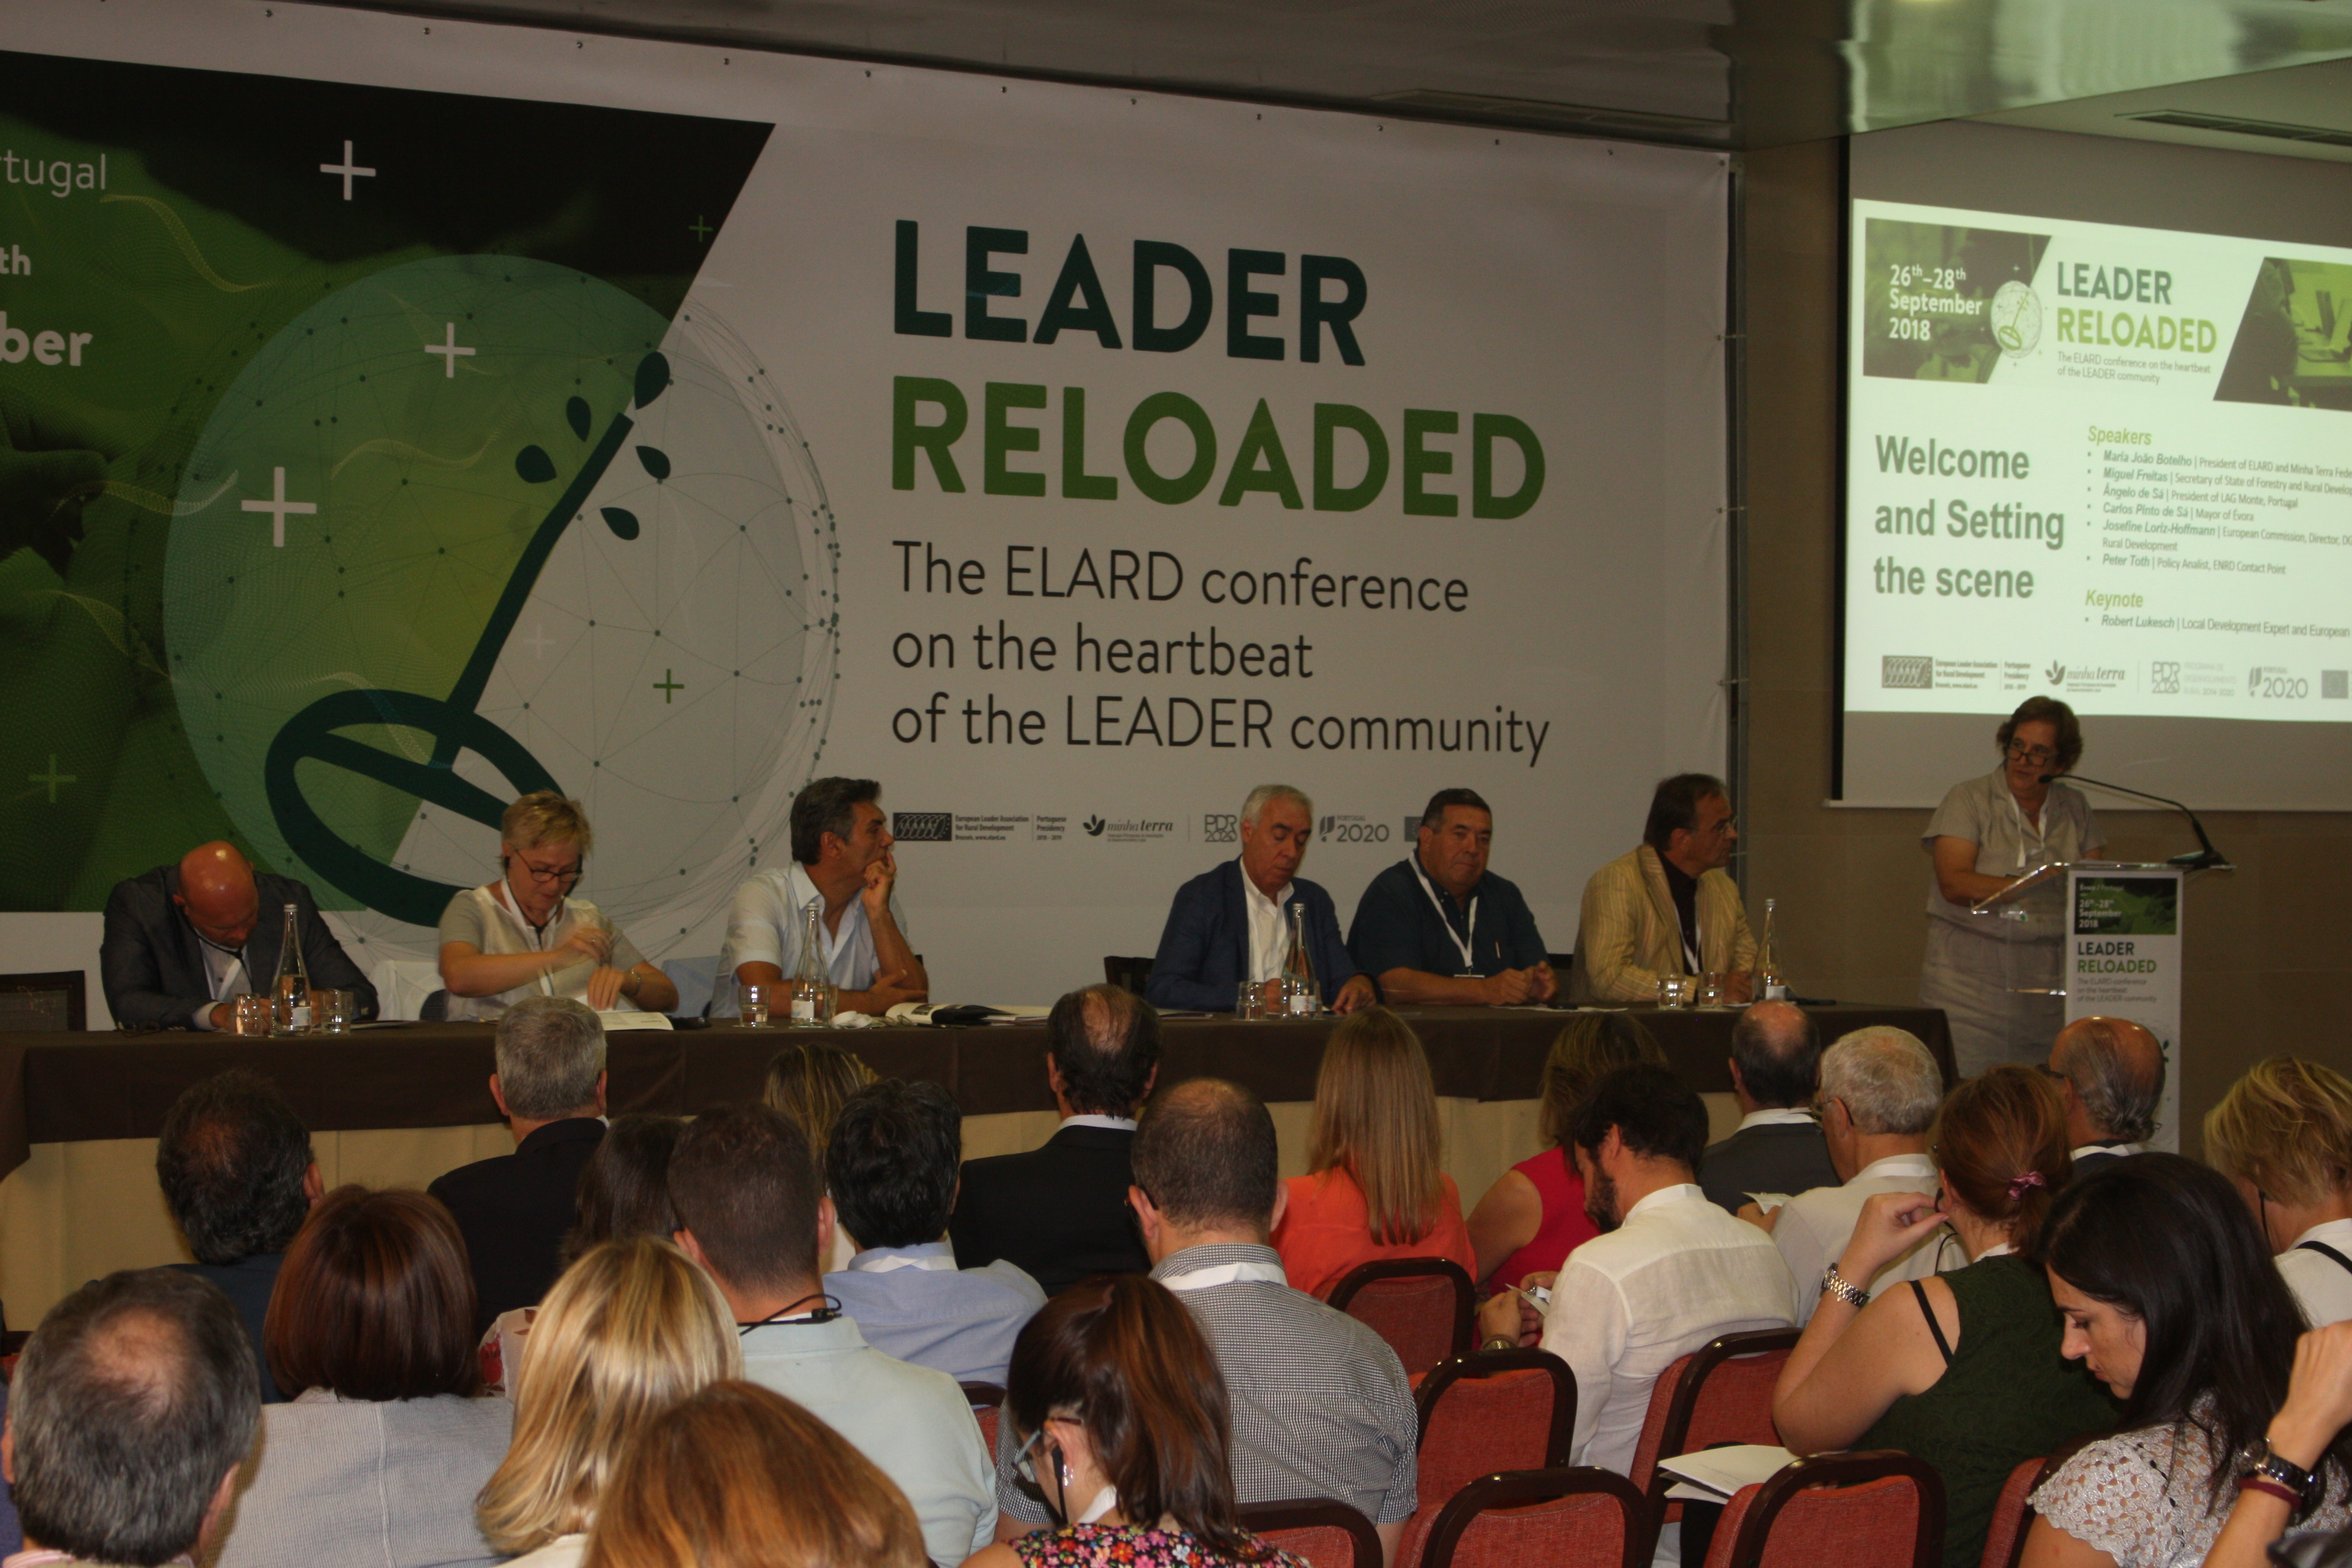 LEADER RELOADED - the ELARD conference on the heartbeat of the LEADER community